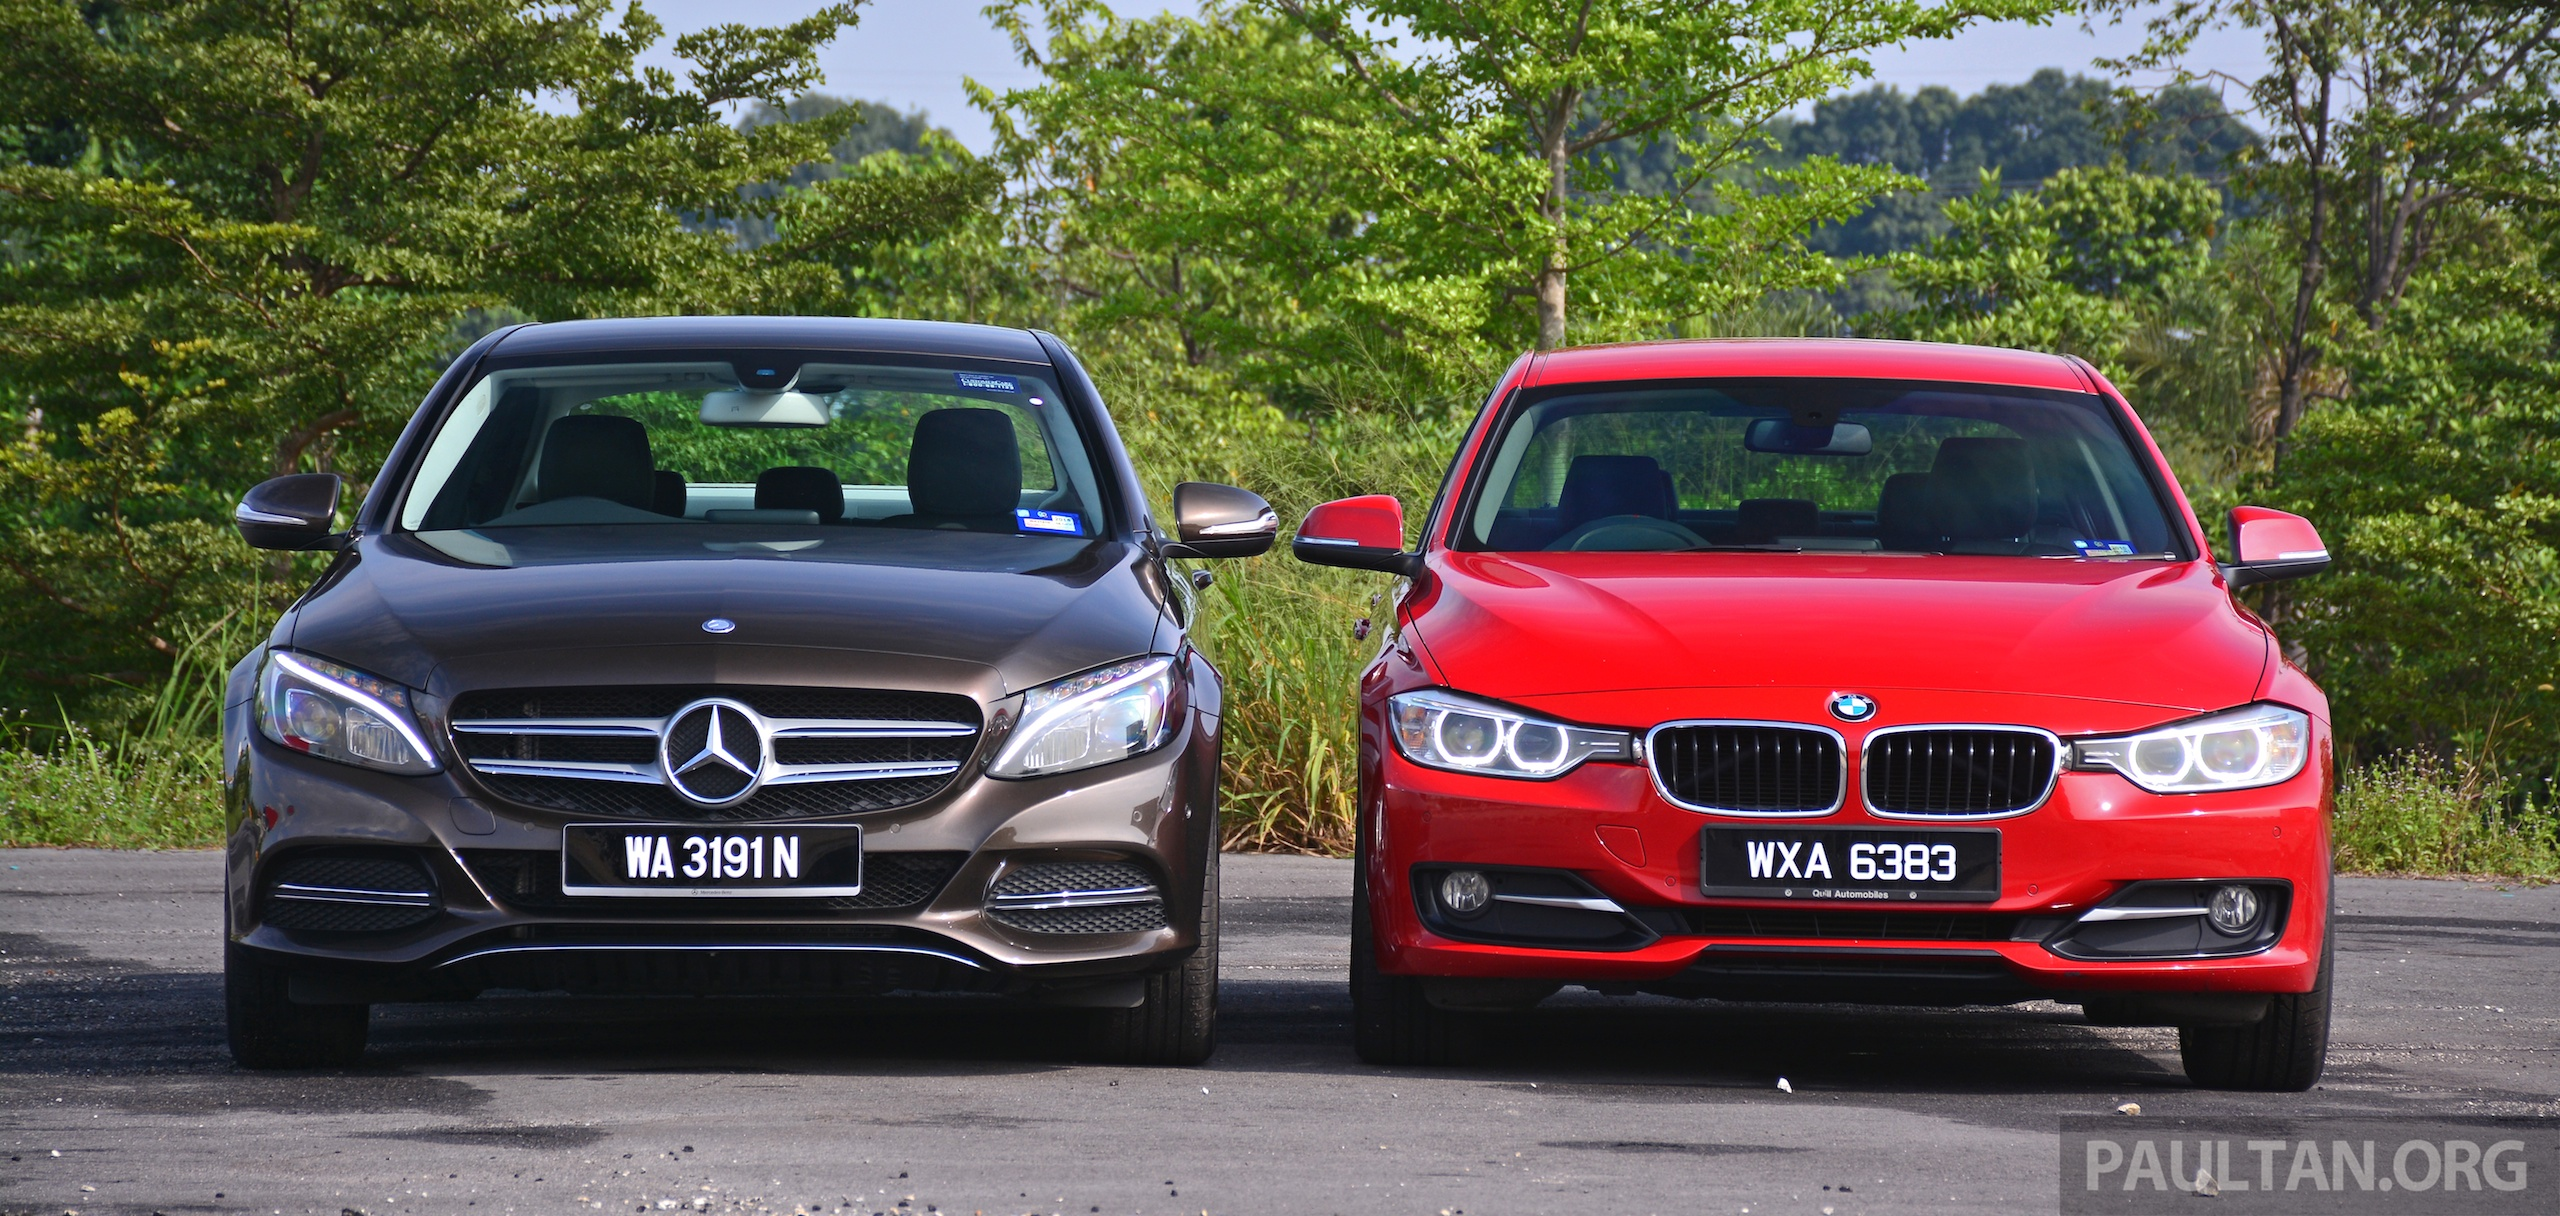 Comparison between mercedes benz c class and bmw 3 series for Mercedes benz s class vs bmw 7 series